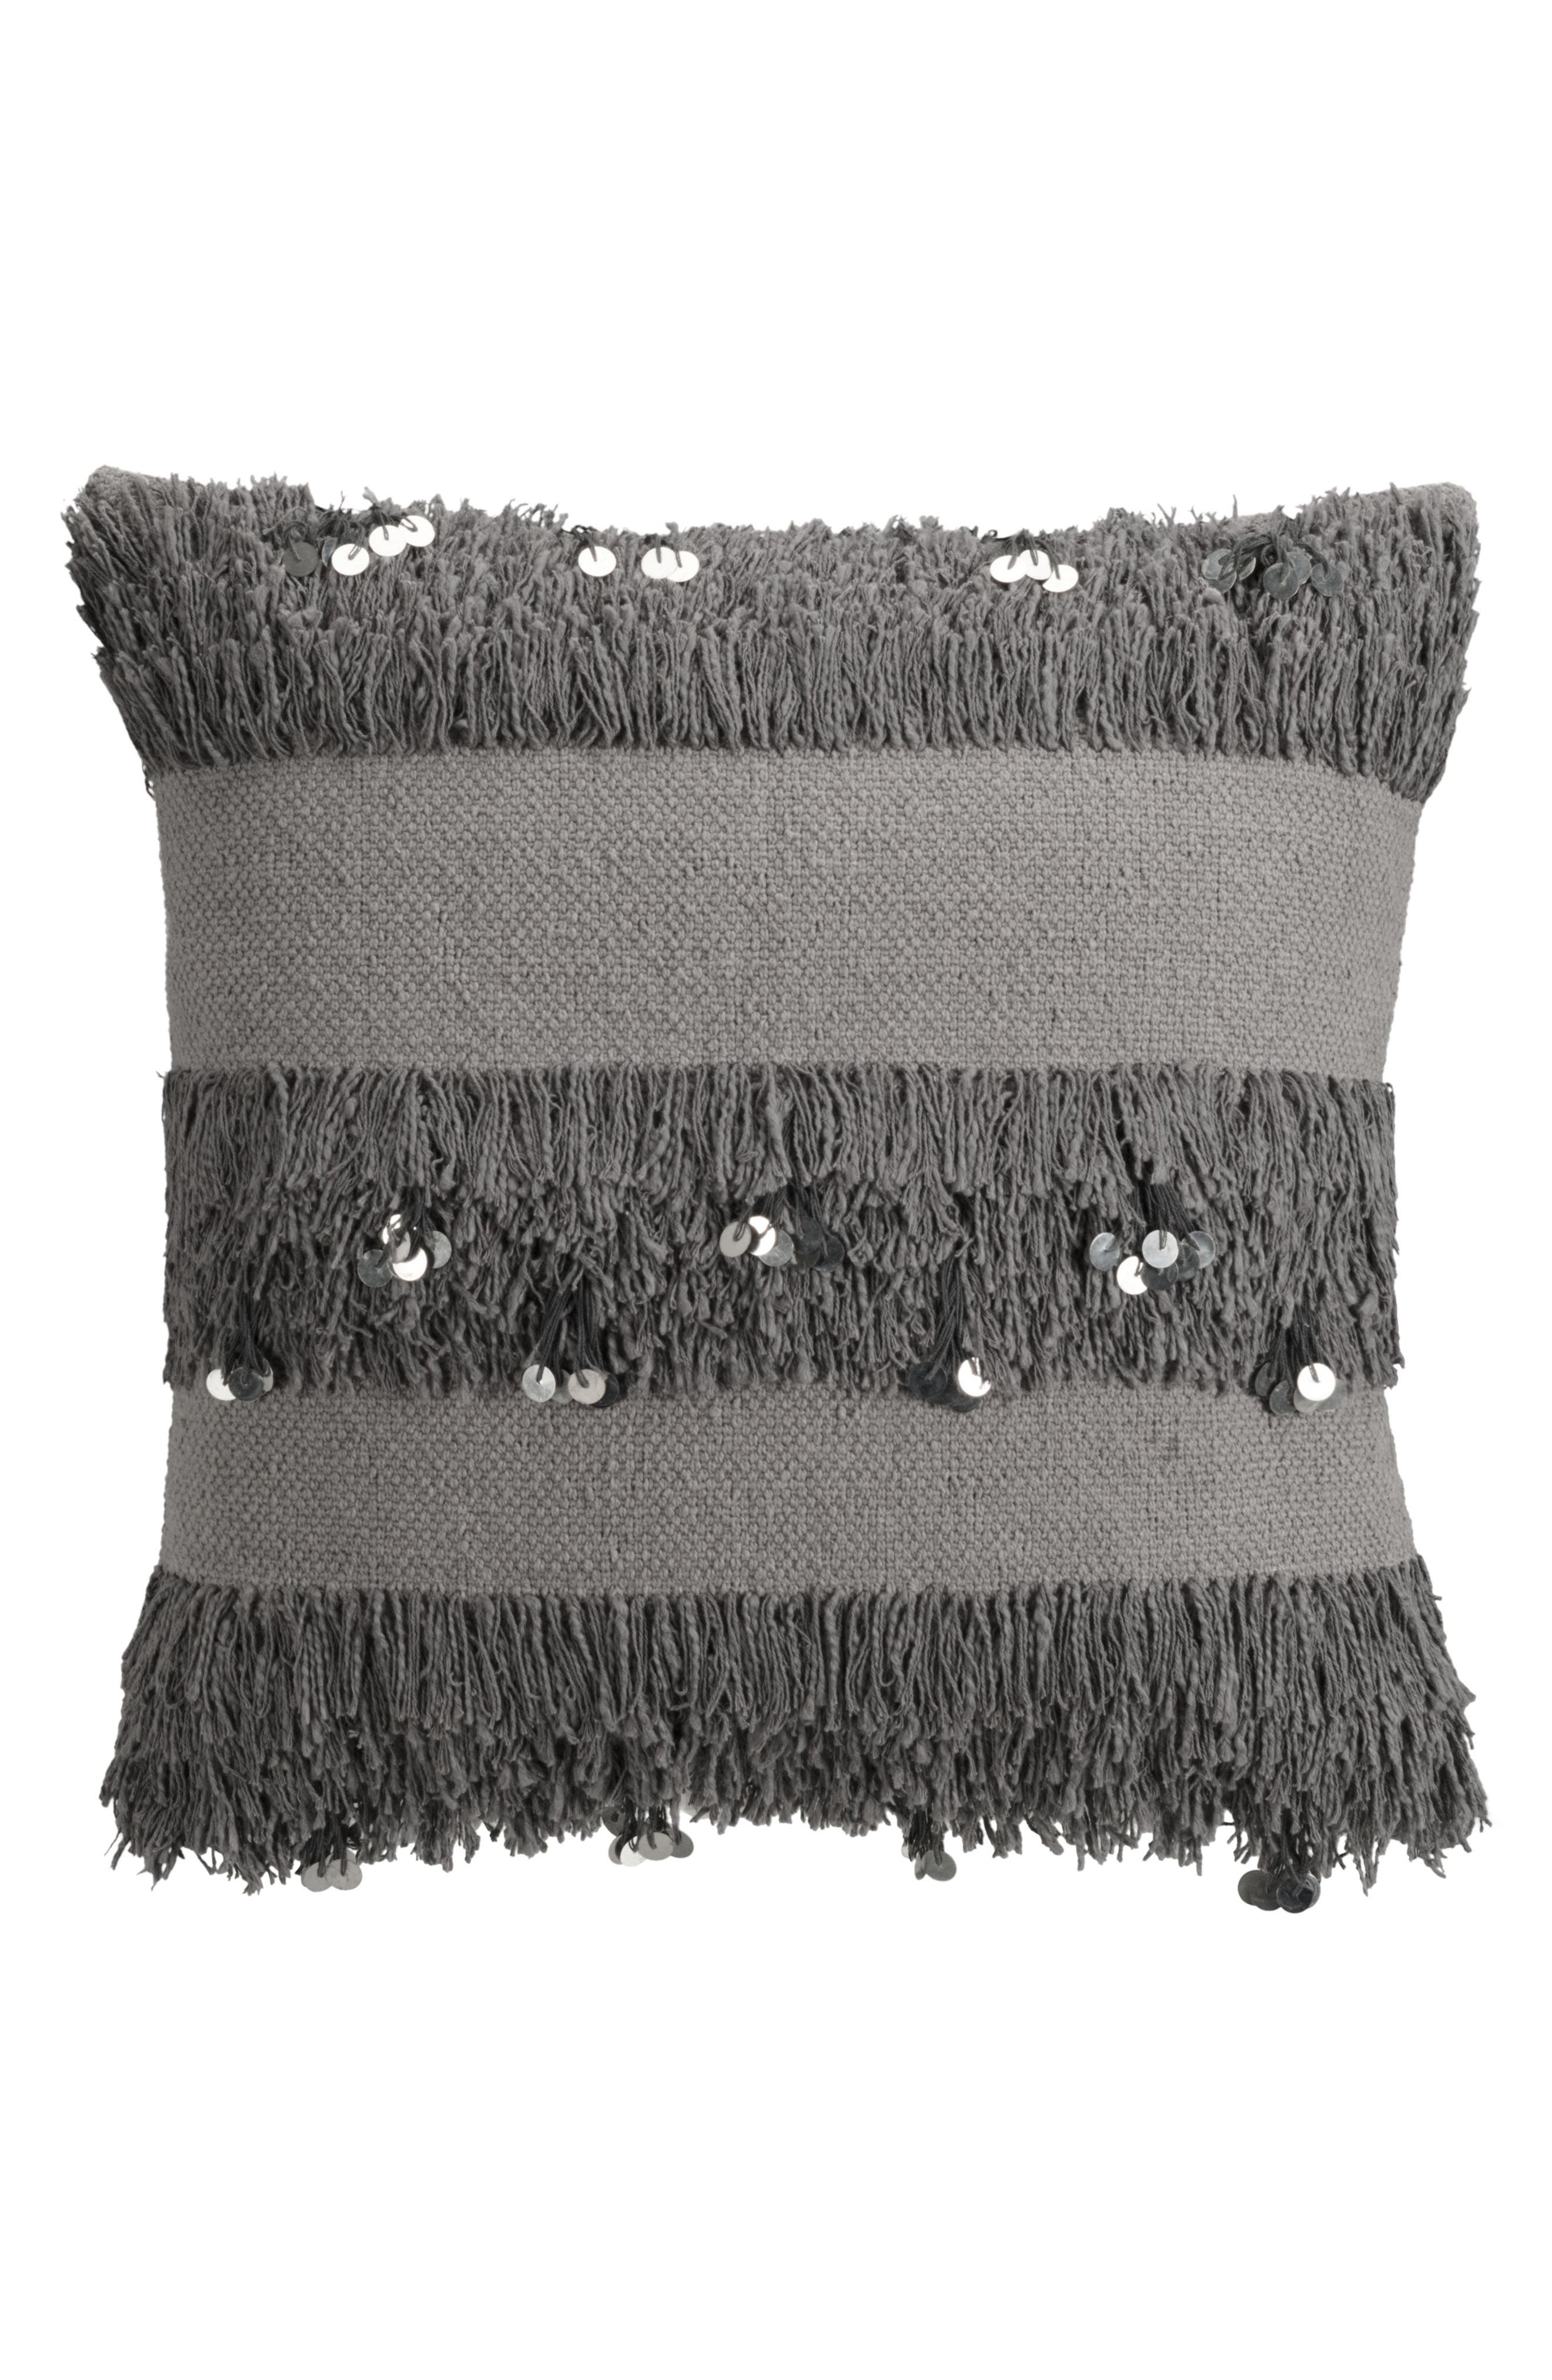 Alternate Image 1 Selected - cupcakes & cashmere Sequin Fringe Pillow